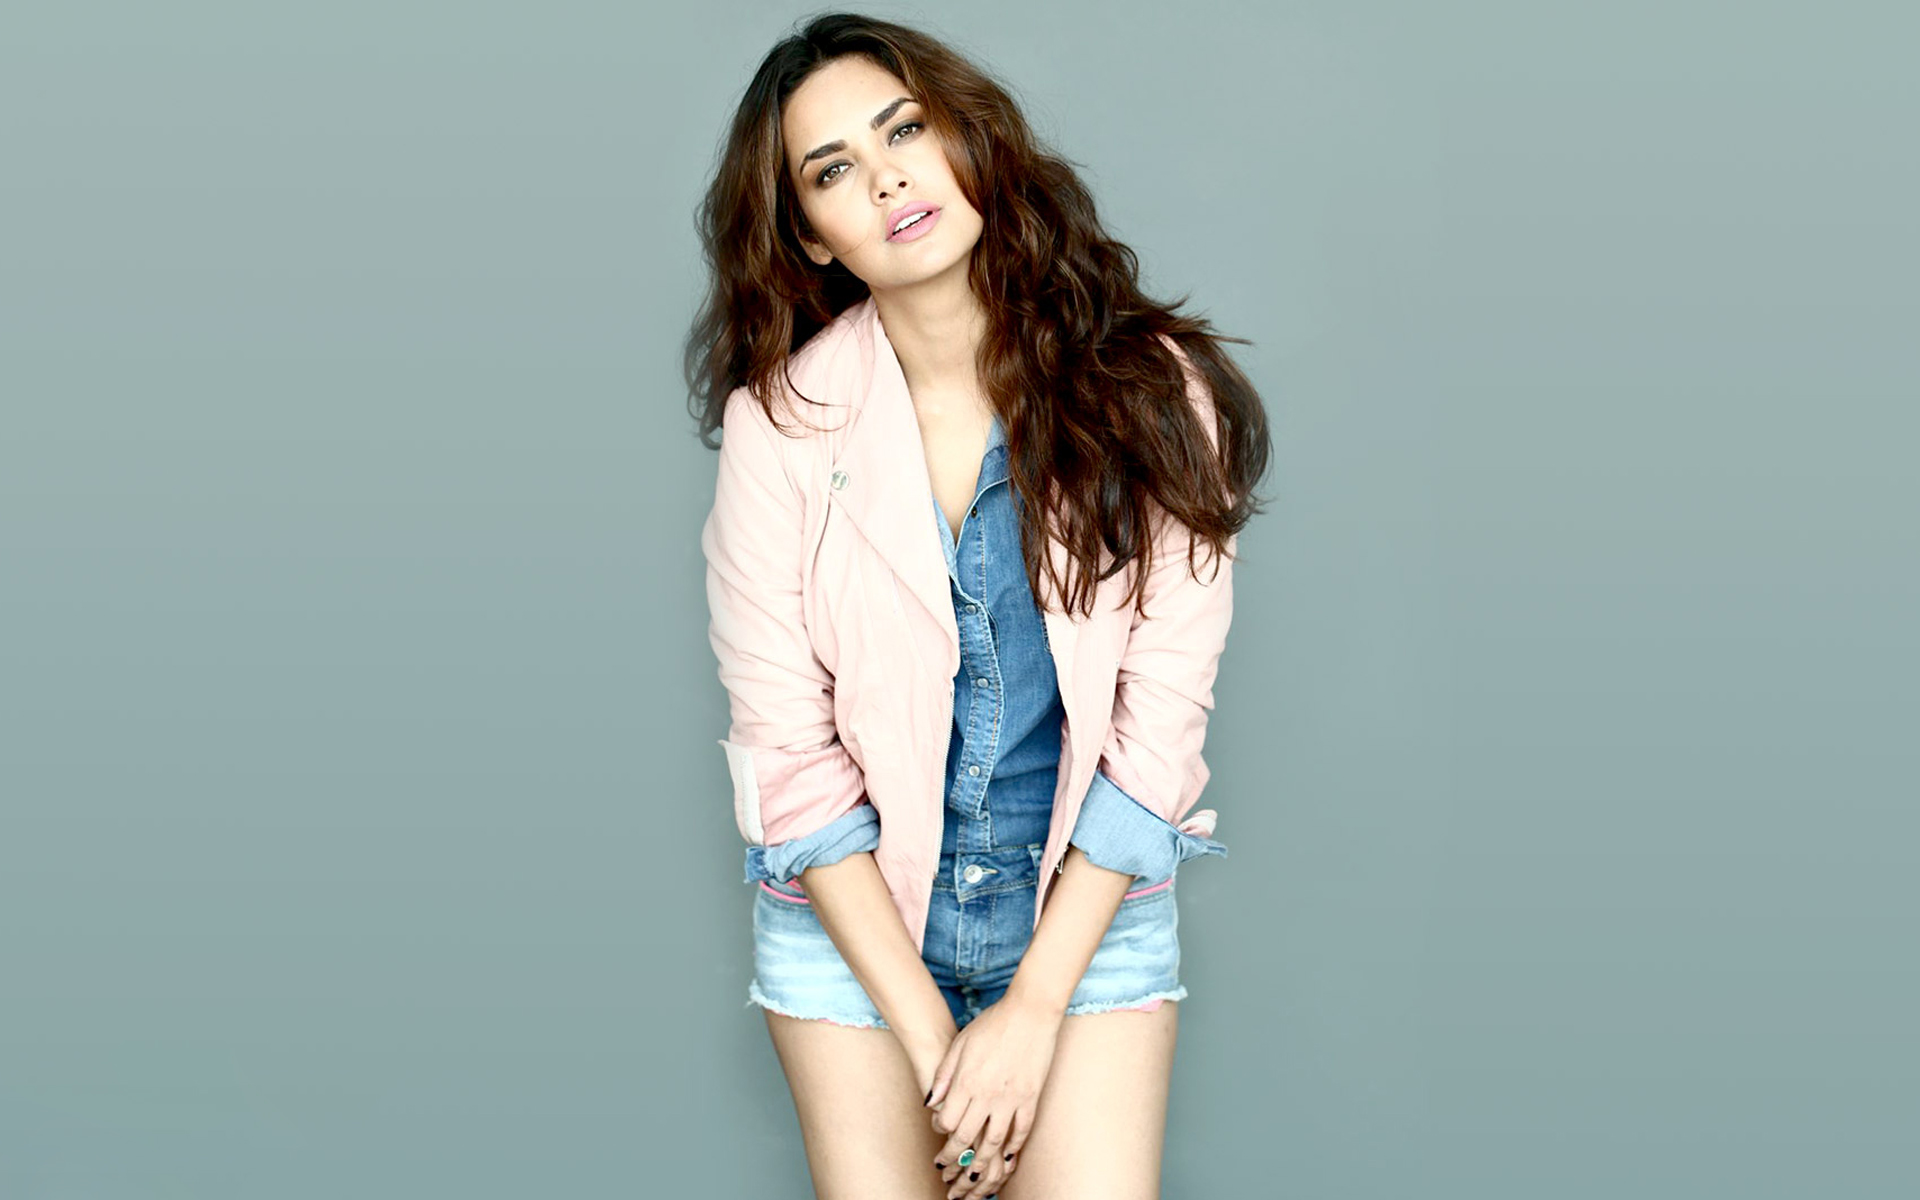 esha-gupta-desktop-wallpaper-54541-56275-hd-wallpapers